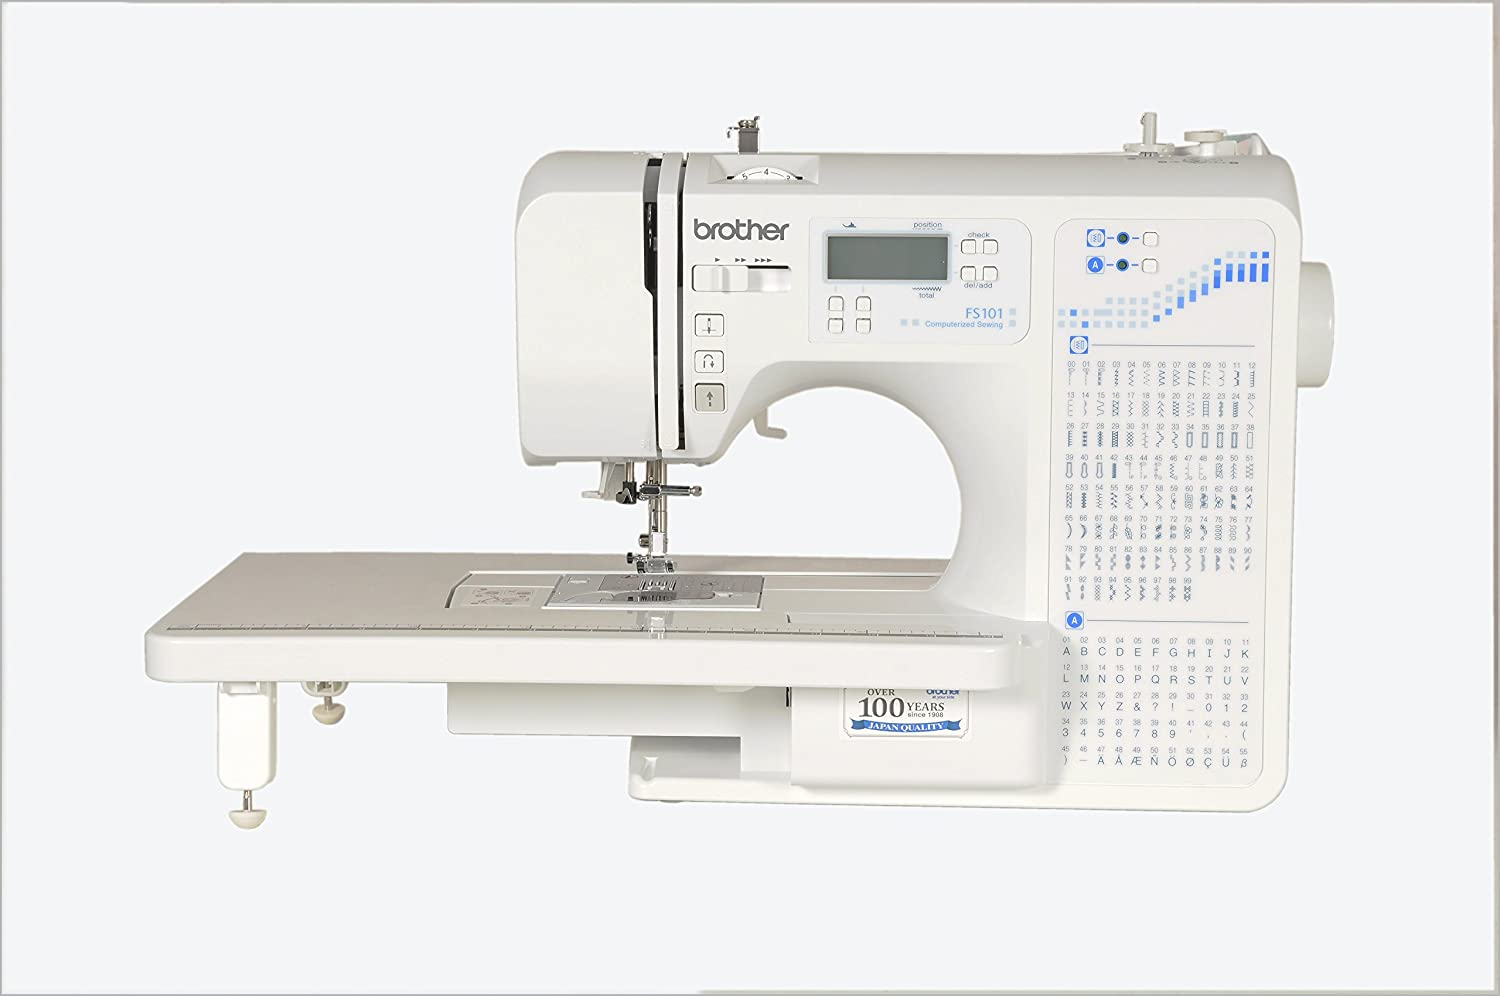 Brother Fs 101 Computerized Sewing Machine With Wide Tablewhite Circuit Board Dream Maker Rs101 Home Kitchen